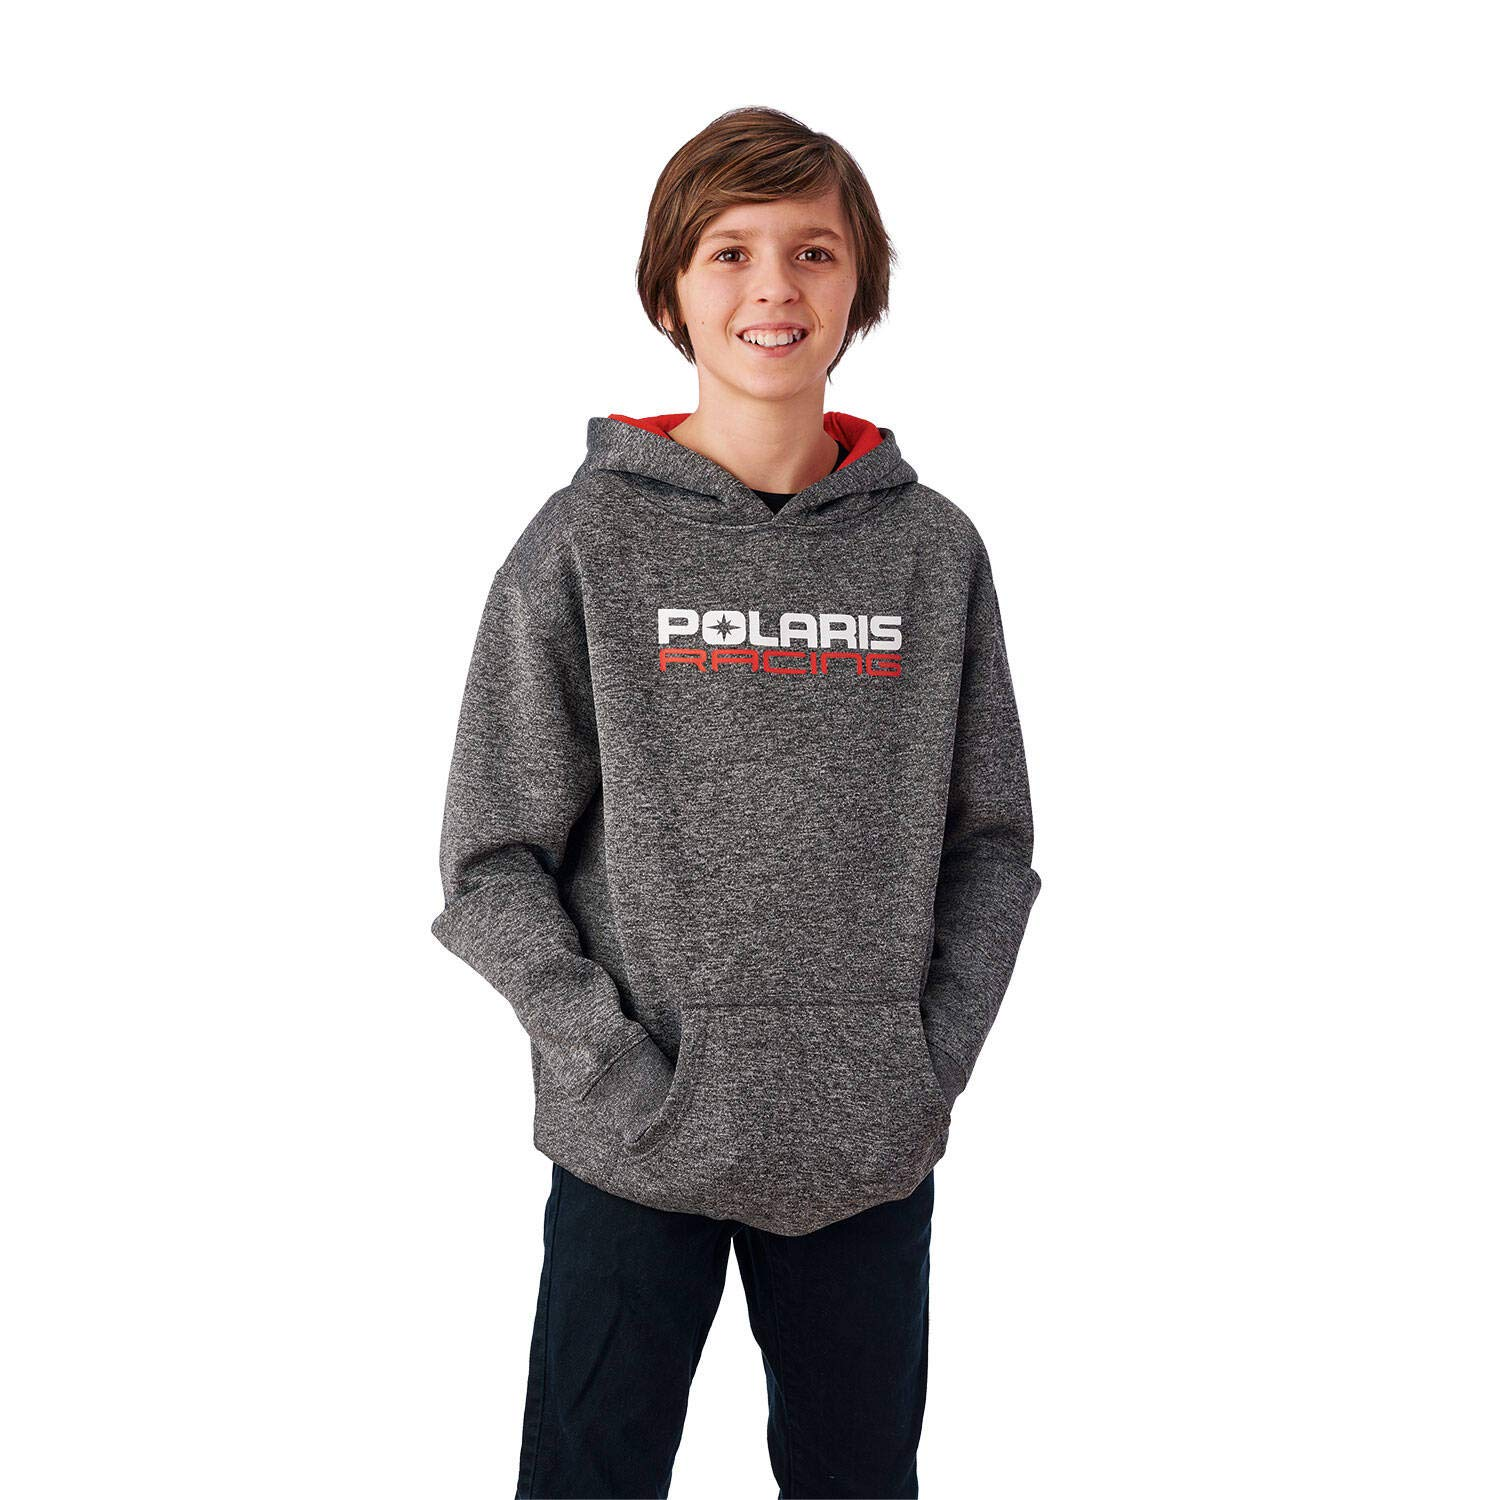 Gray Polaris Youth Racing Hoodie Sweatshirt with Polaris Logo